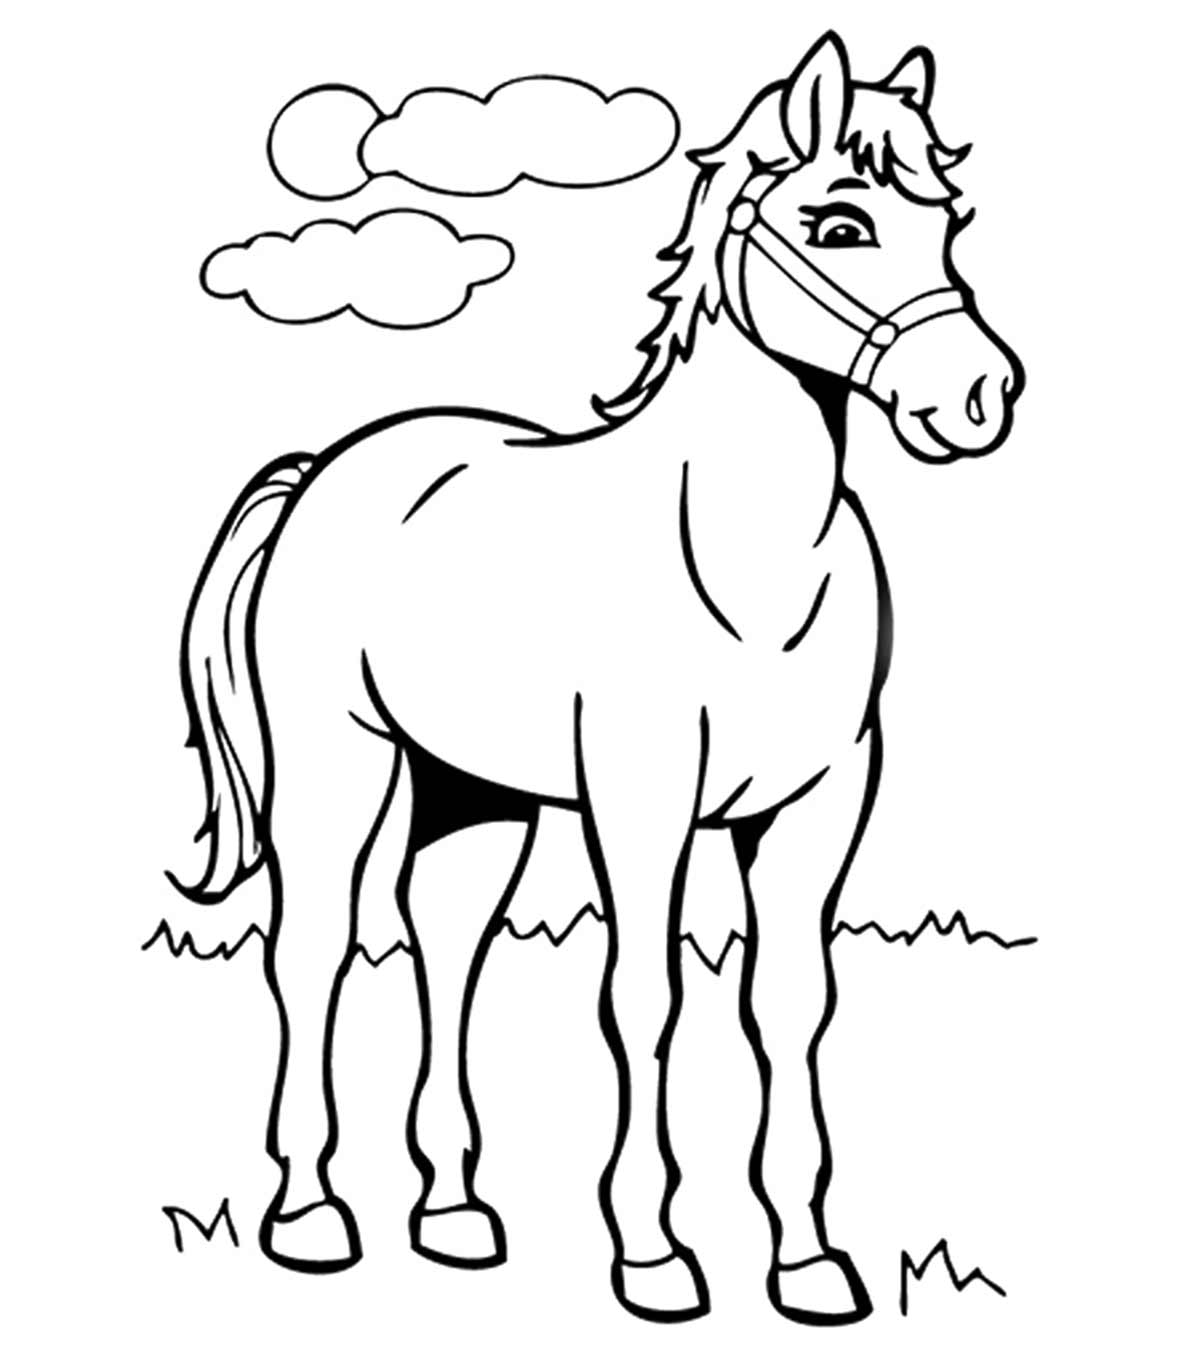 Top 25 Free Printable Horse Coloring Pages - YouTube | 1350x1200